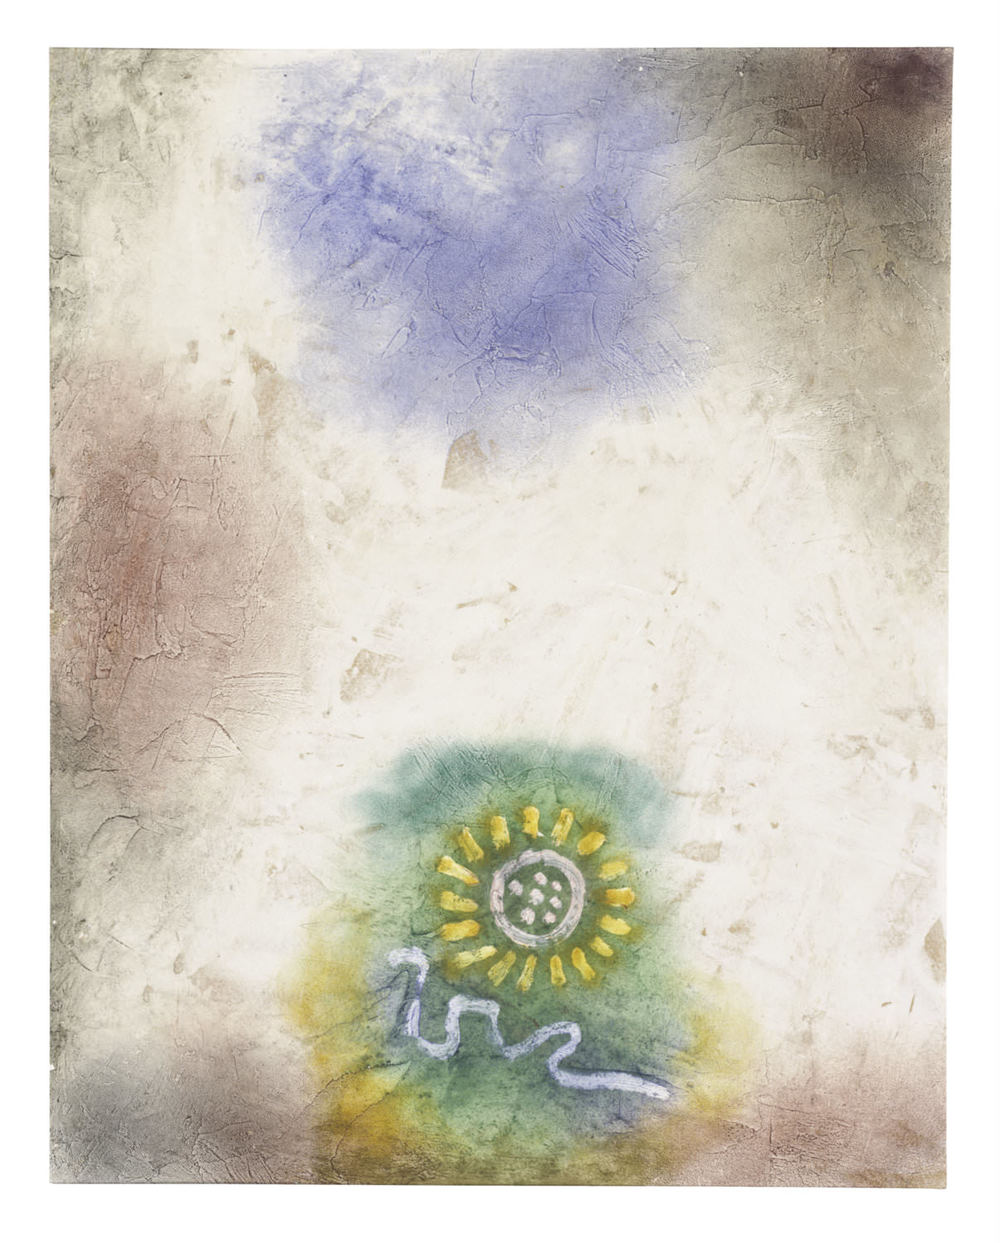 Paul Klee Ohne Titel (Blume und Schlange) [Rückseite von Kind und Drache], um 1940 Rückseite, Untitled (Flower and Snake), watercolour and coloured paste on primed cardboard, 33,5 x 42,5 cm, Zentrum Paul Klee, Bern, Schenkung Livia Klee © Zentrum Paul Klee, Bern, Bildarchiv